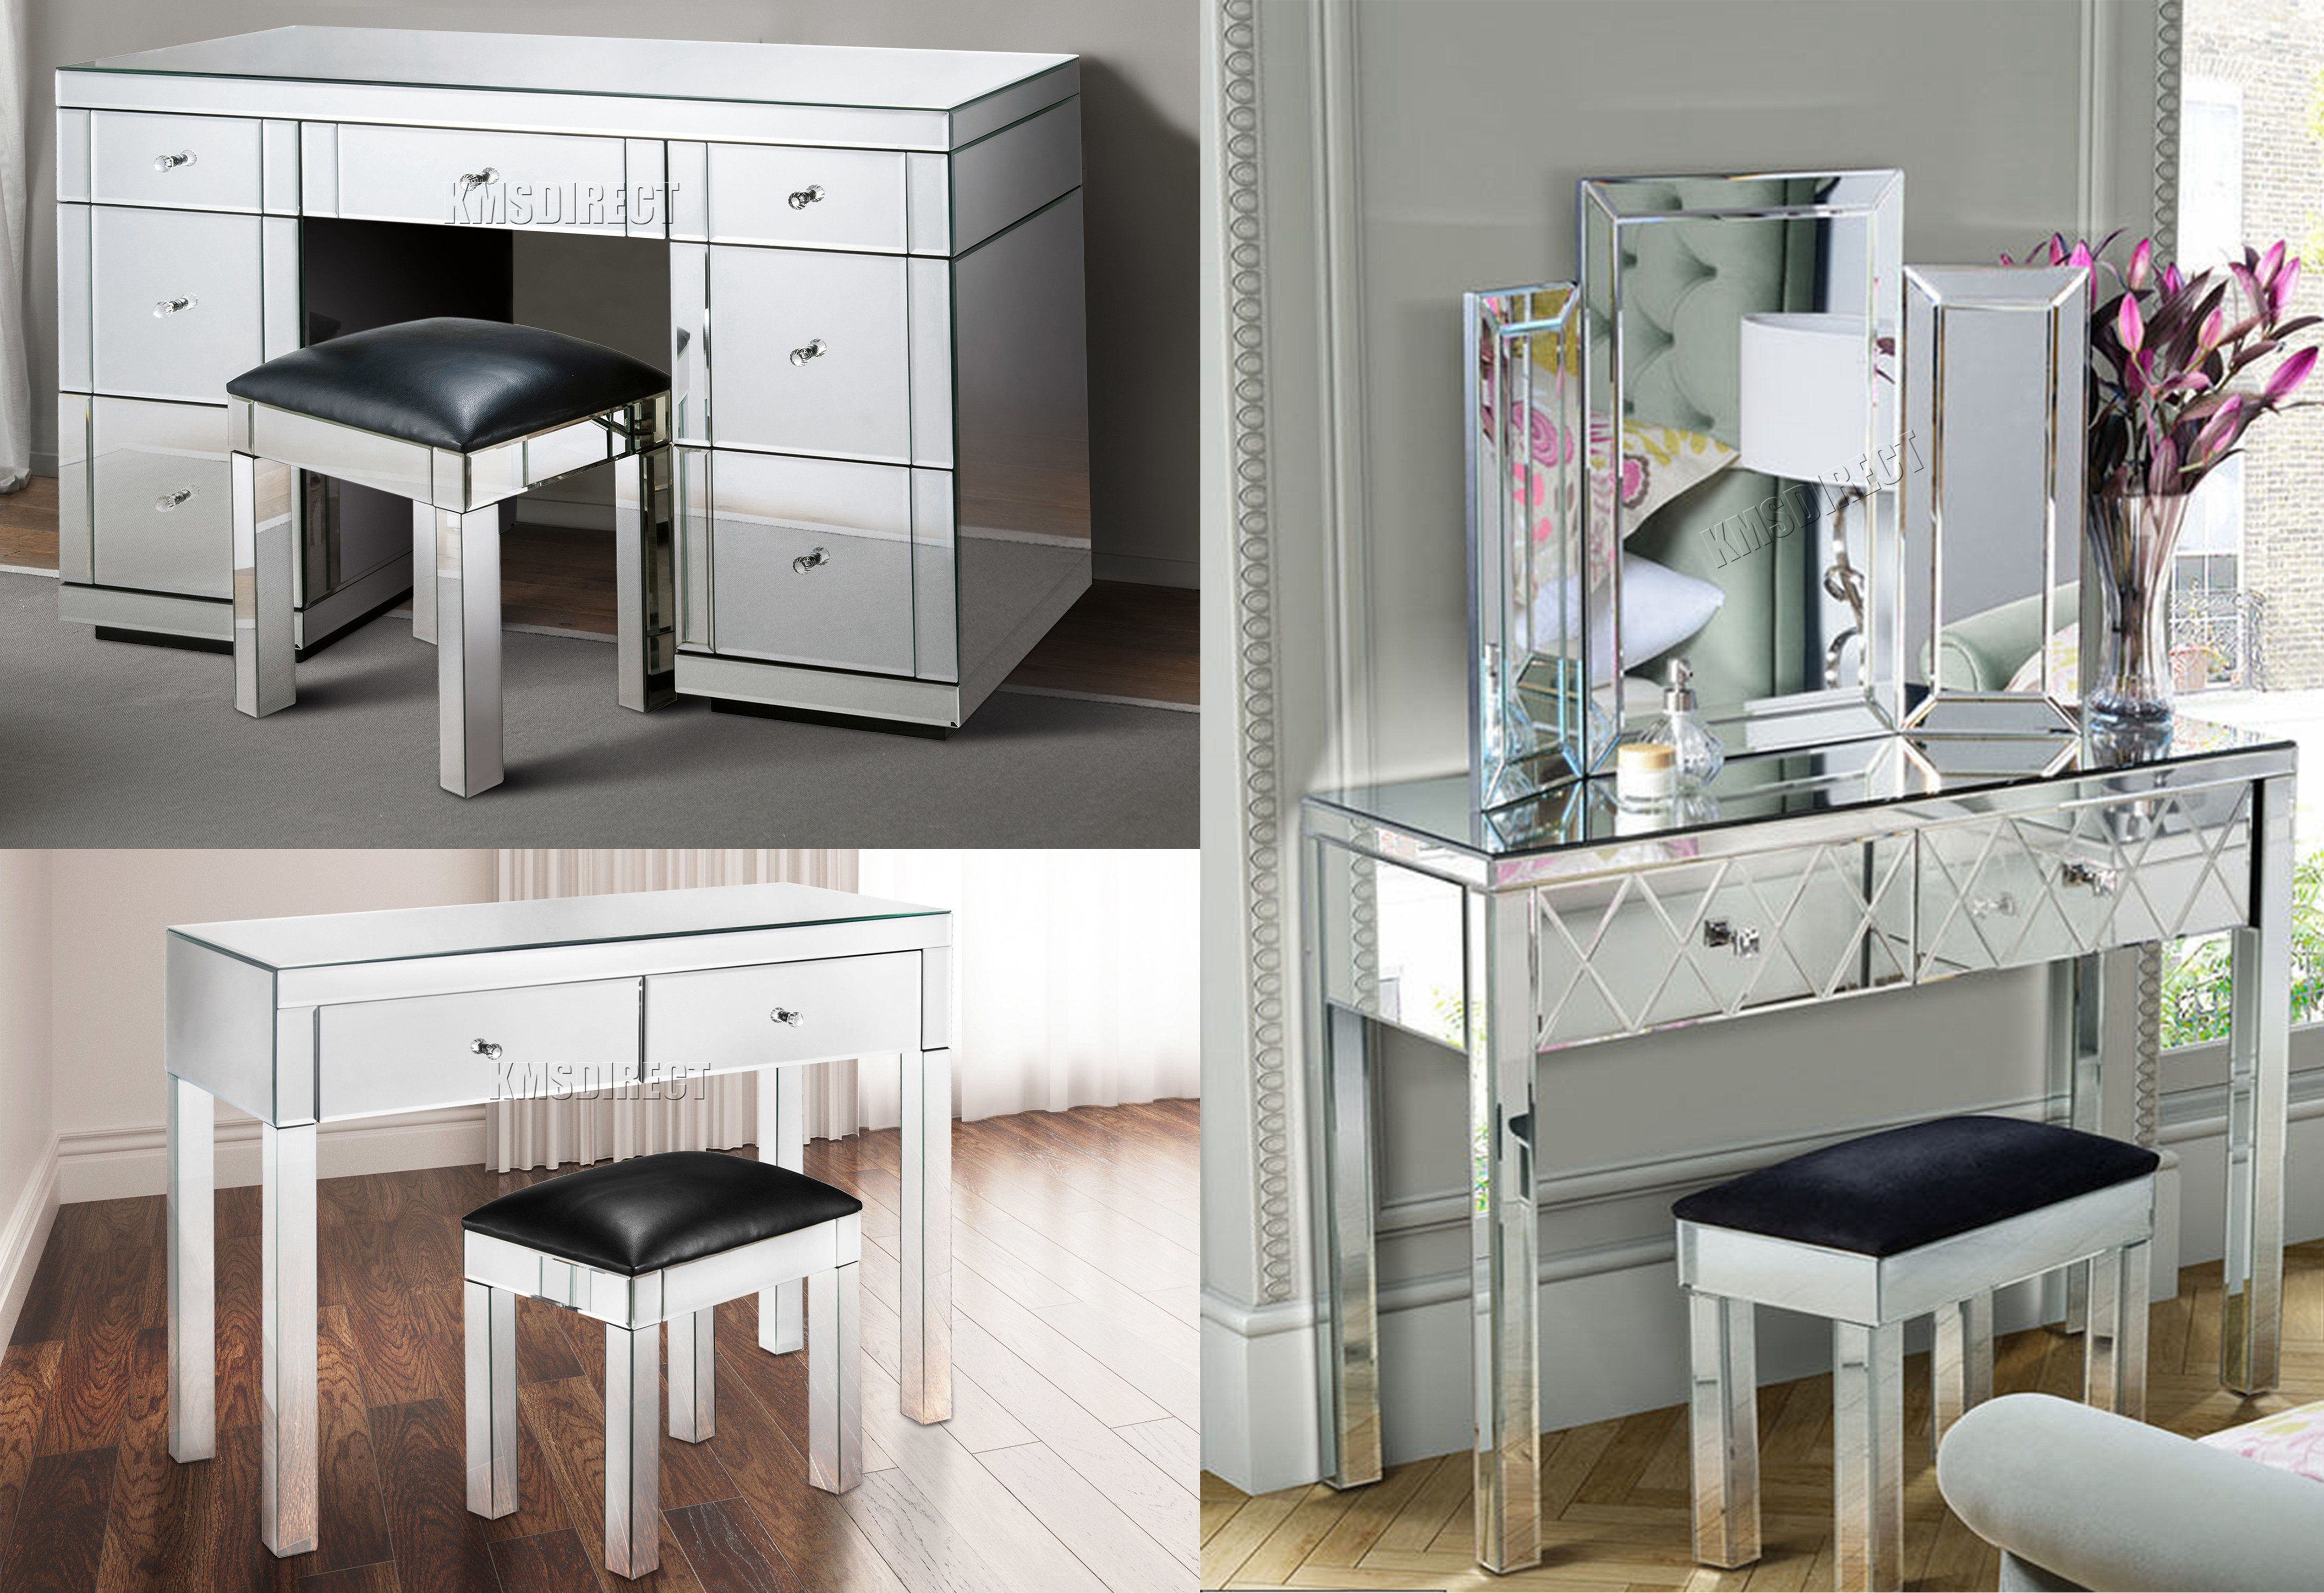 Best Westwood Mirrored Furniture Glass Dressing Table With Drawer Console Bedroom Ebay With Pictures